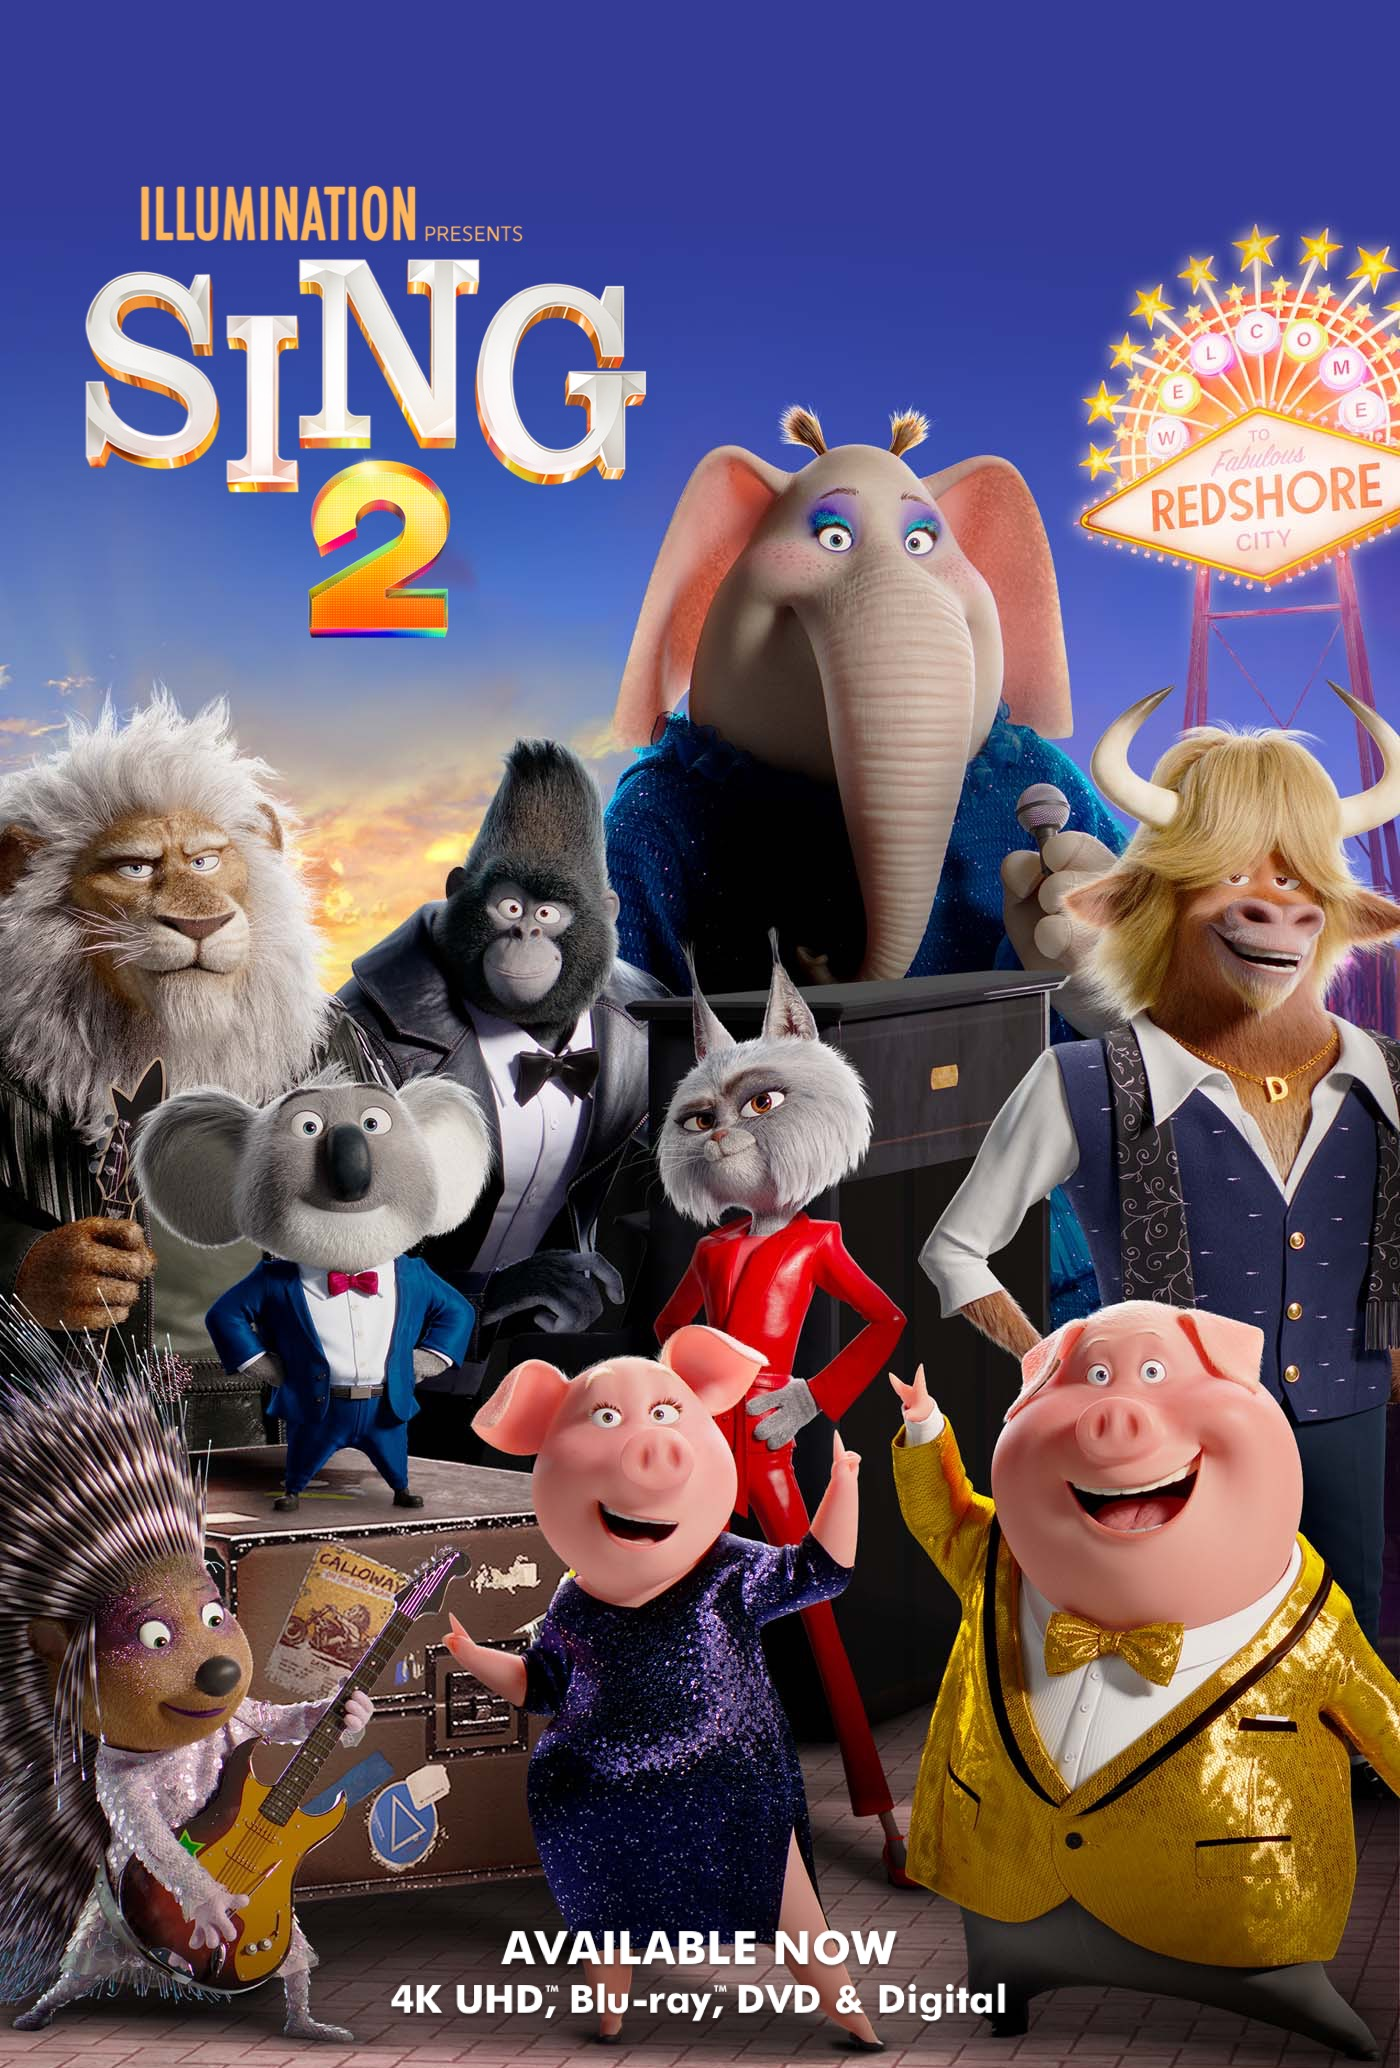 Sing 2 Poster. Watch the movie in theaters December 22, 2021.